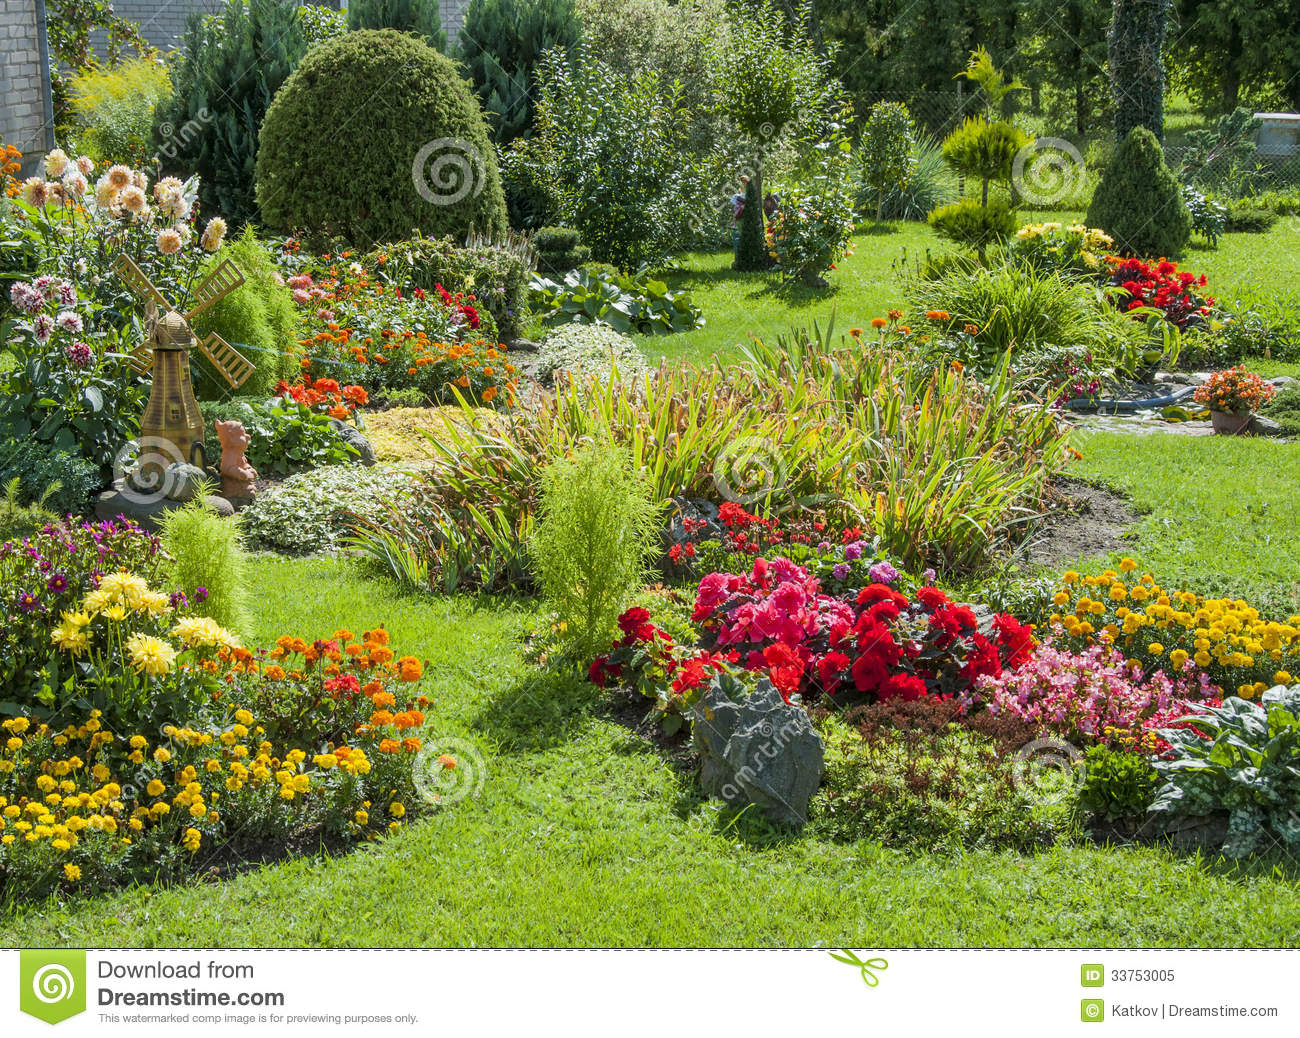 landscaped flower garden stock image image of holiday 33753005. Black Bedroom Furniture Sets. Home Design Ideas